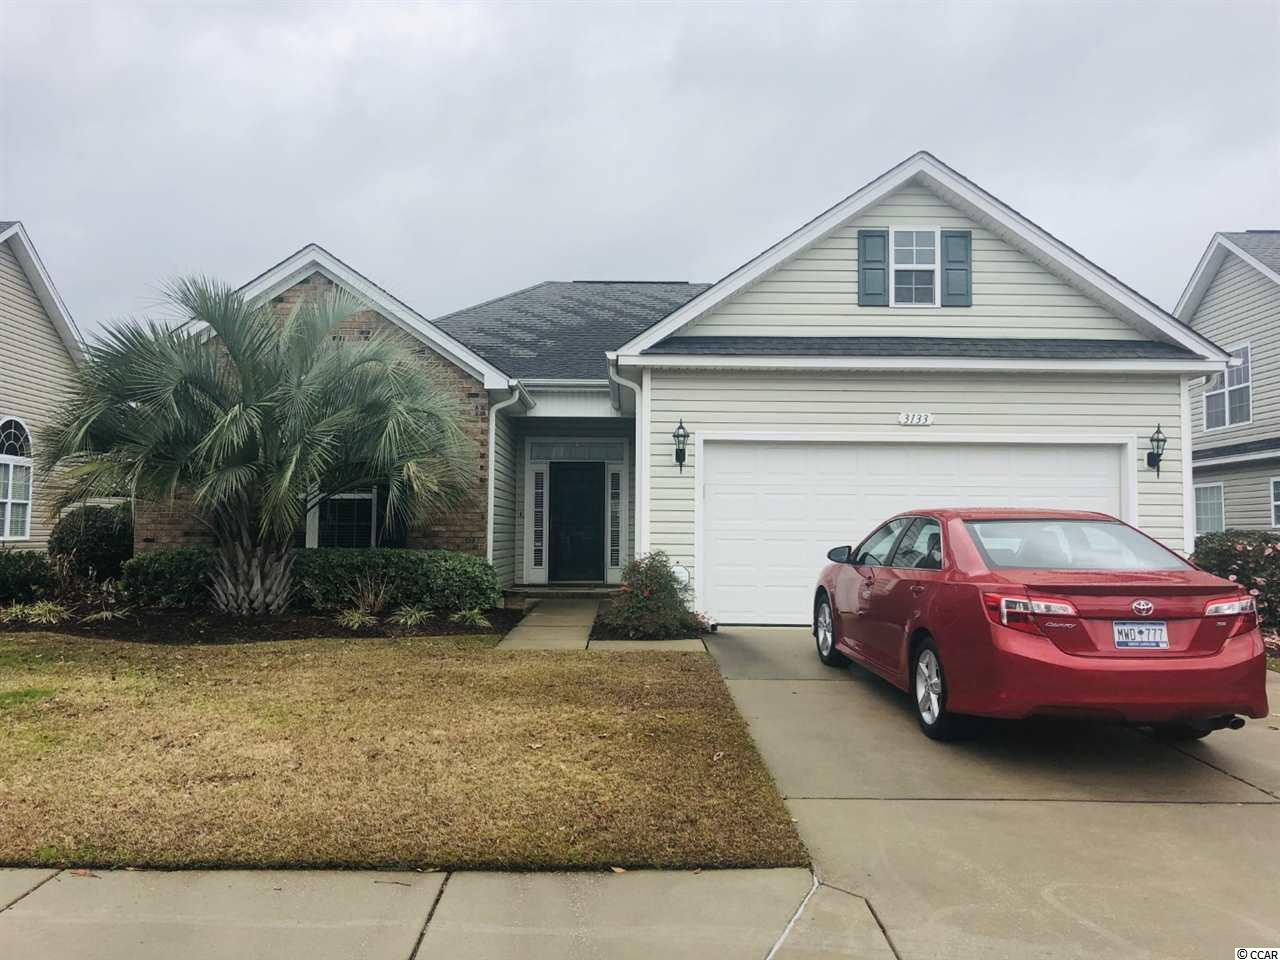 """Don't miss this great opportunity to buy in the highly sought after, gated section of Prince Creek, Murrells Inlet. The only house available in the community, this pet free, 3 bedroom house is immaculate and well taken care of. As you enter the house you will find yourself in a very open living area with all wood floors, high 10"""" ceilings, an open kitchen and a Carolina Room toward the back. Master suite features, tray ceilings, wood floors, whirlpool tub in master bath, a separate shower, double sink, and a vanity. Second bedroom features vaulted ceilings and arched windows. Please call with any questions and don't miss your chance to schedule your showing."""